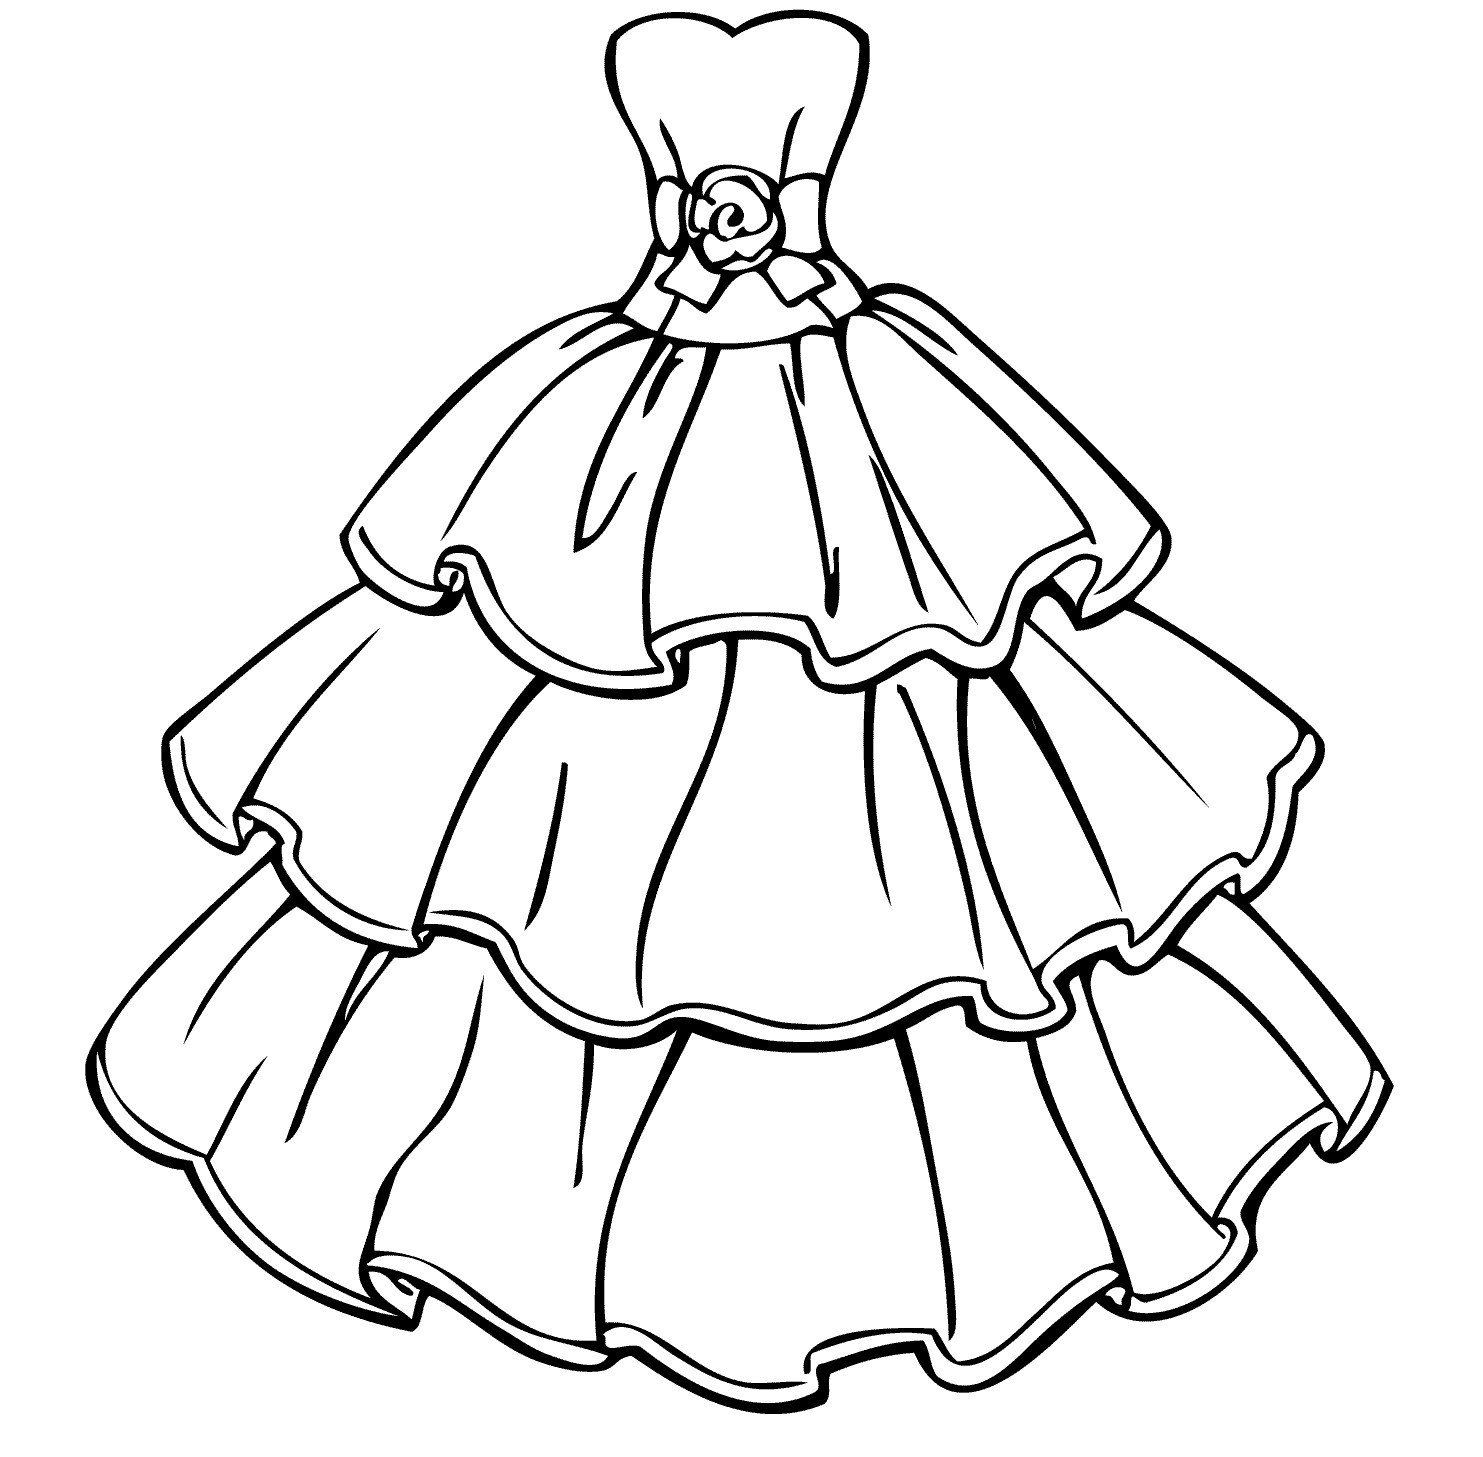 1483x1457 Dresses Coloring Pages Dress Picloud Co Arilitv Adult Dresses